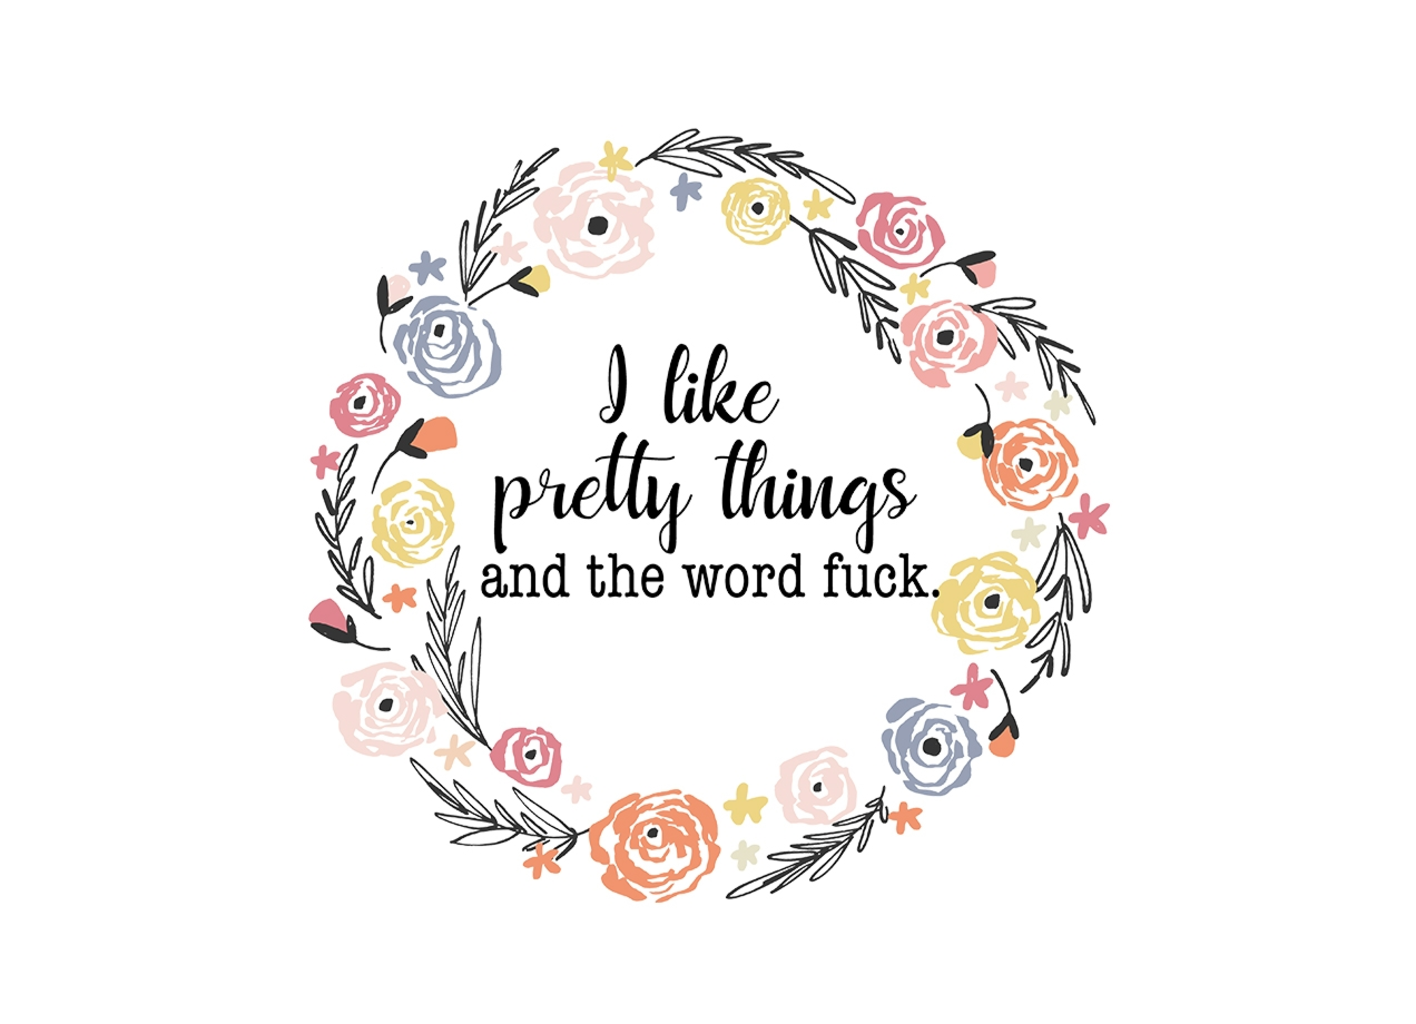 Threadless: I like pretty things and the word fuck.